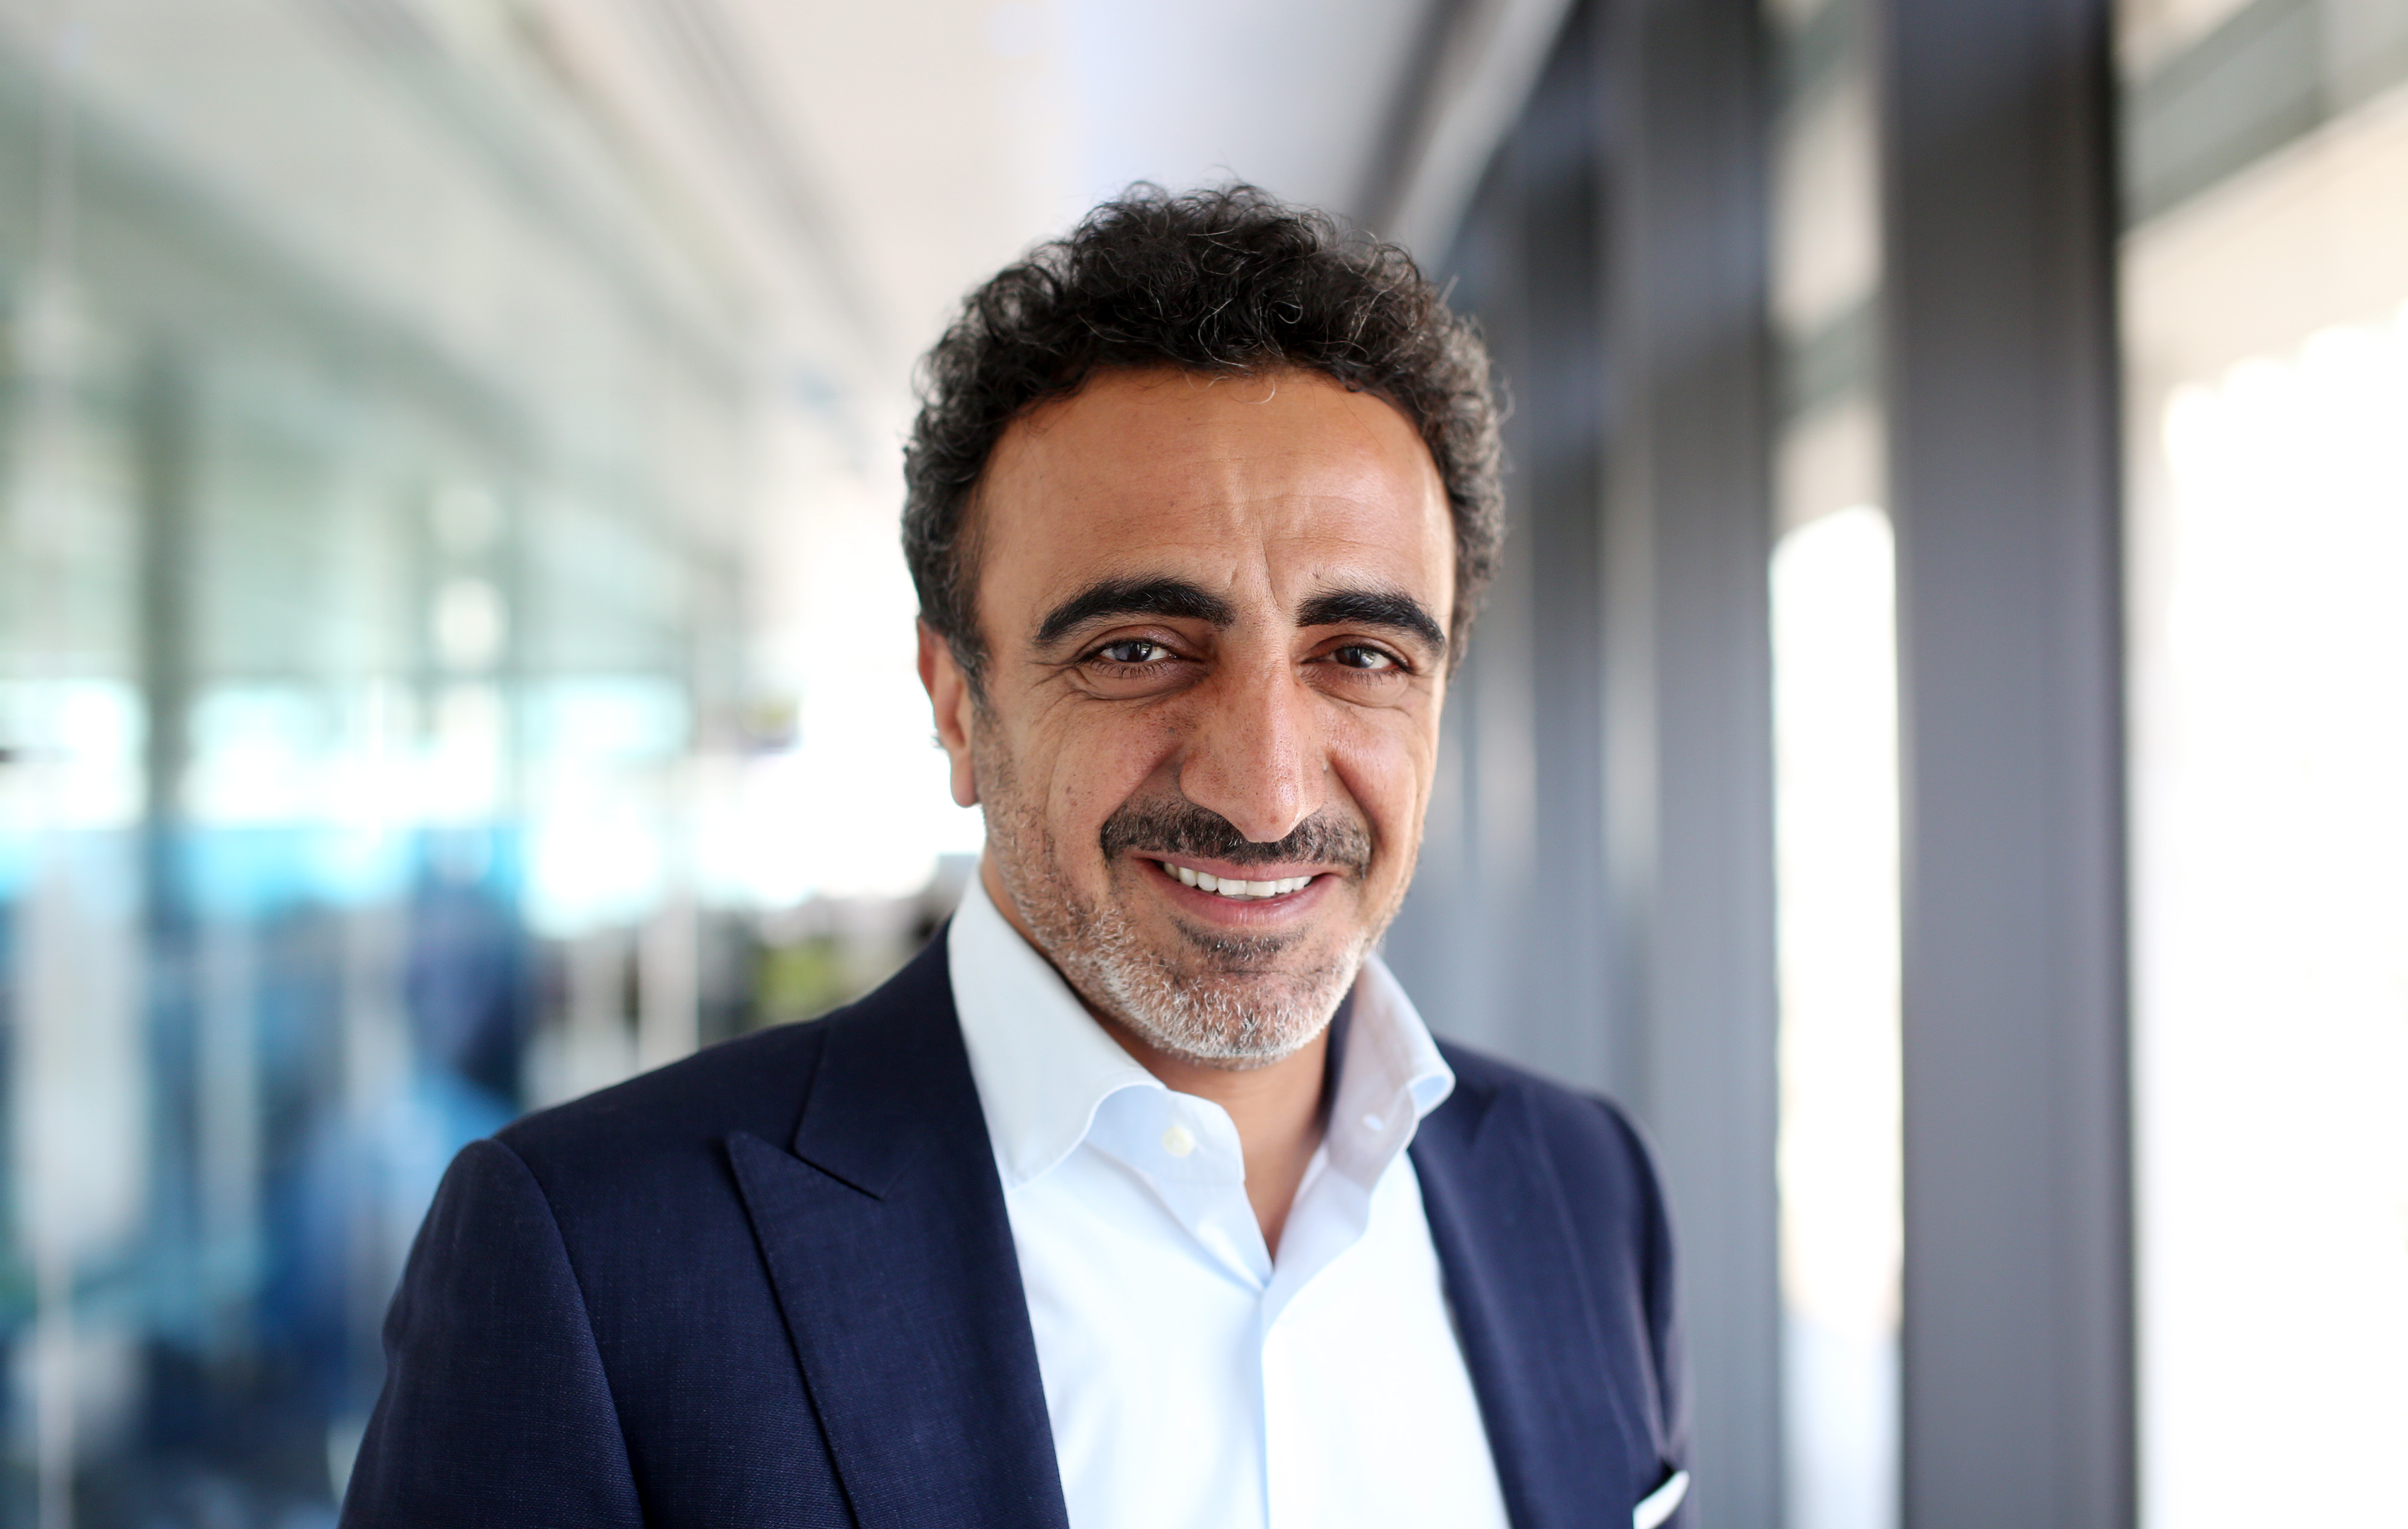 Hamdi Ulukaya, a billionaire and founder, president and chief executive officer of Chobani Inc.  in London on July 17, 2013.